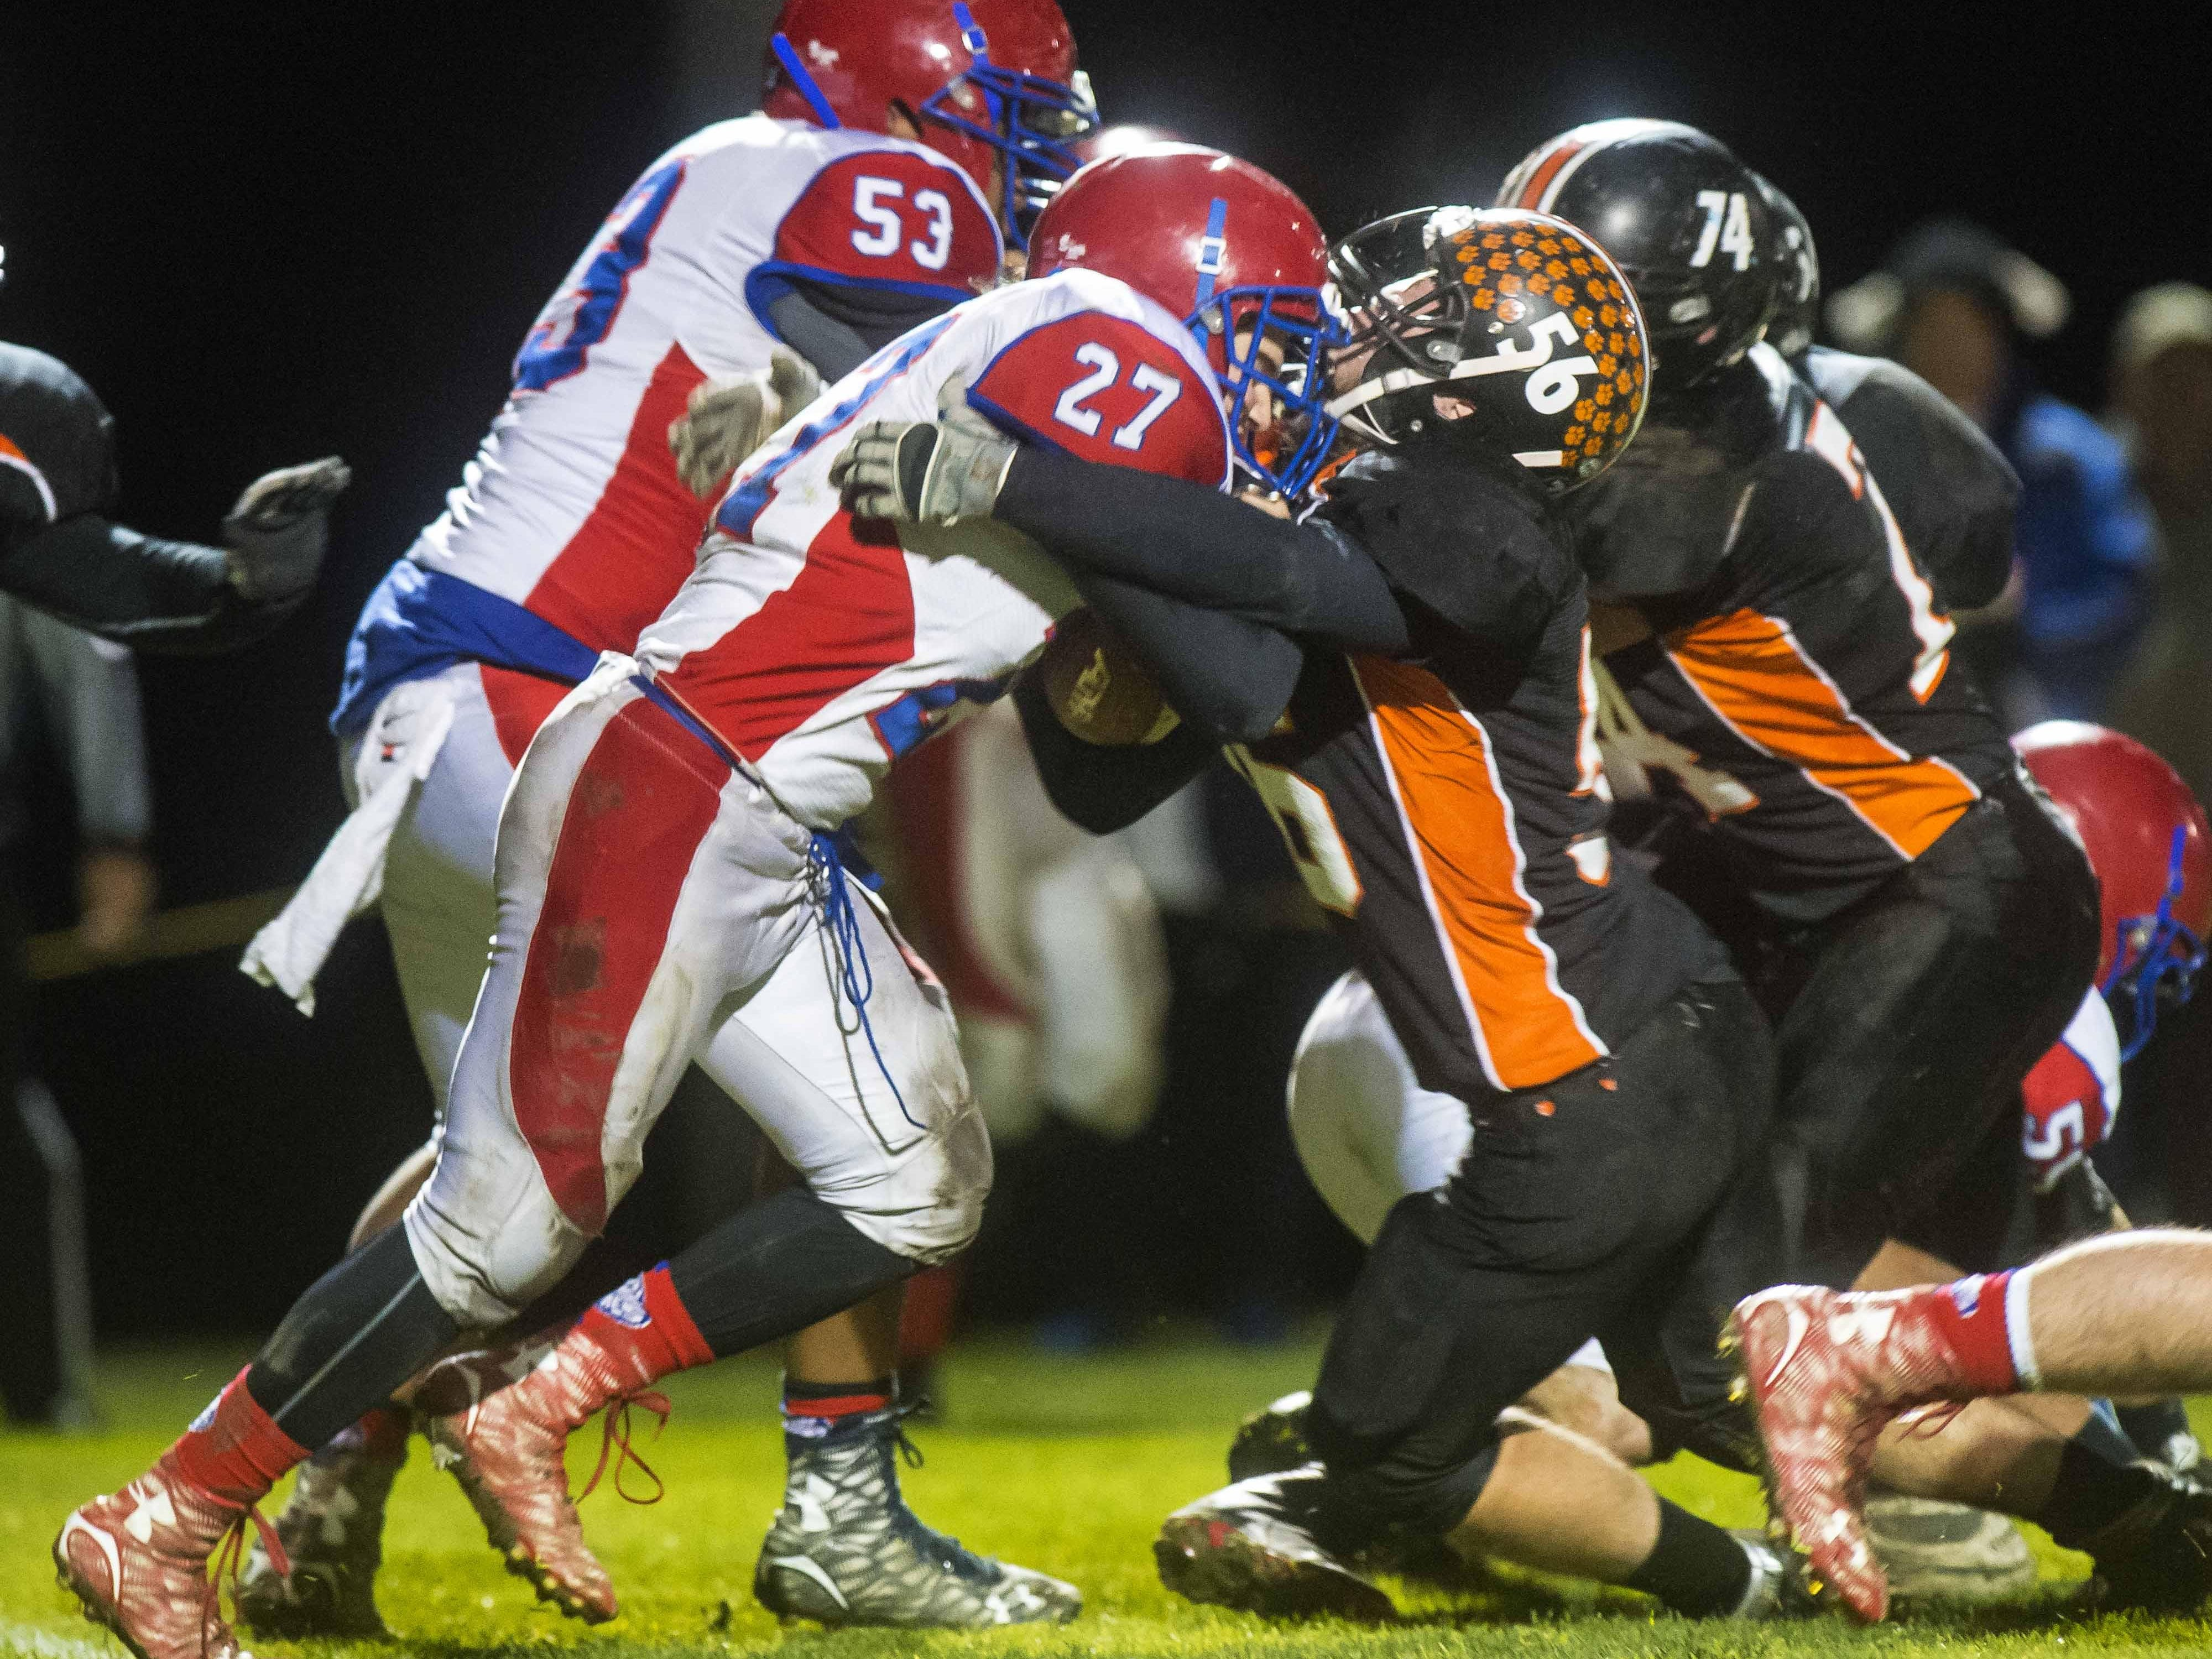 Middlebury's Bruce Wright, right, stops Hartford's Walkker Judd in Middlebury on Friday, October 30, 2015.